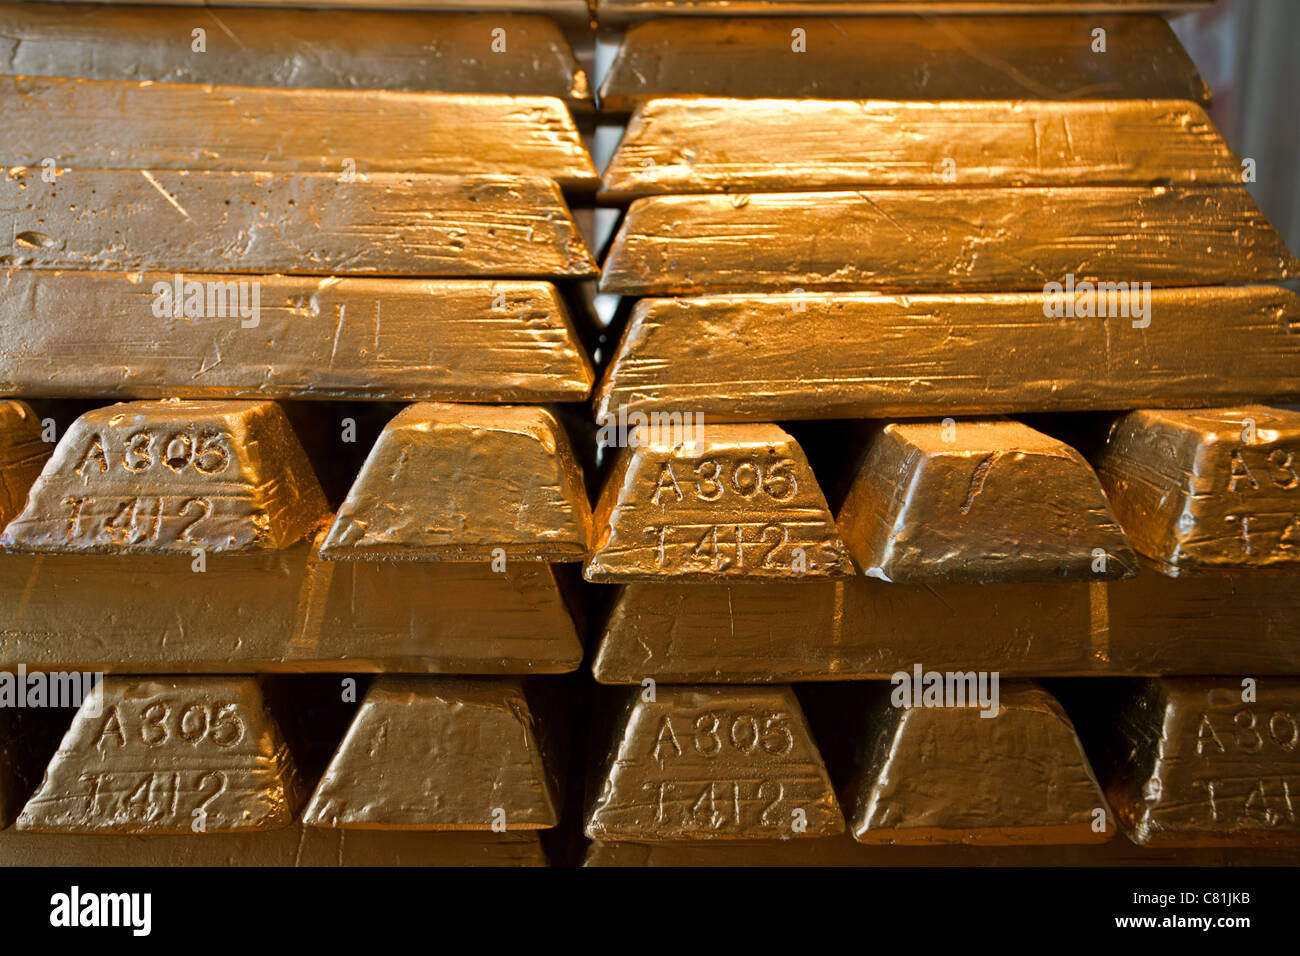 Gold ingots - Stock Image